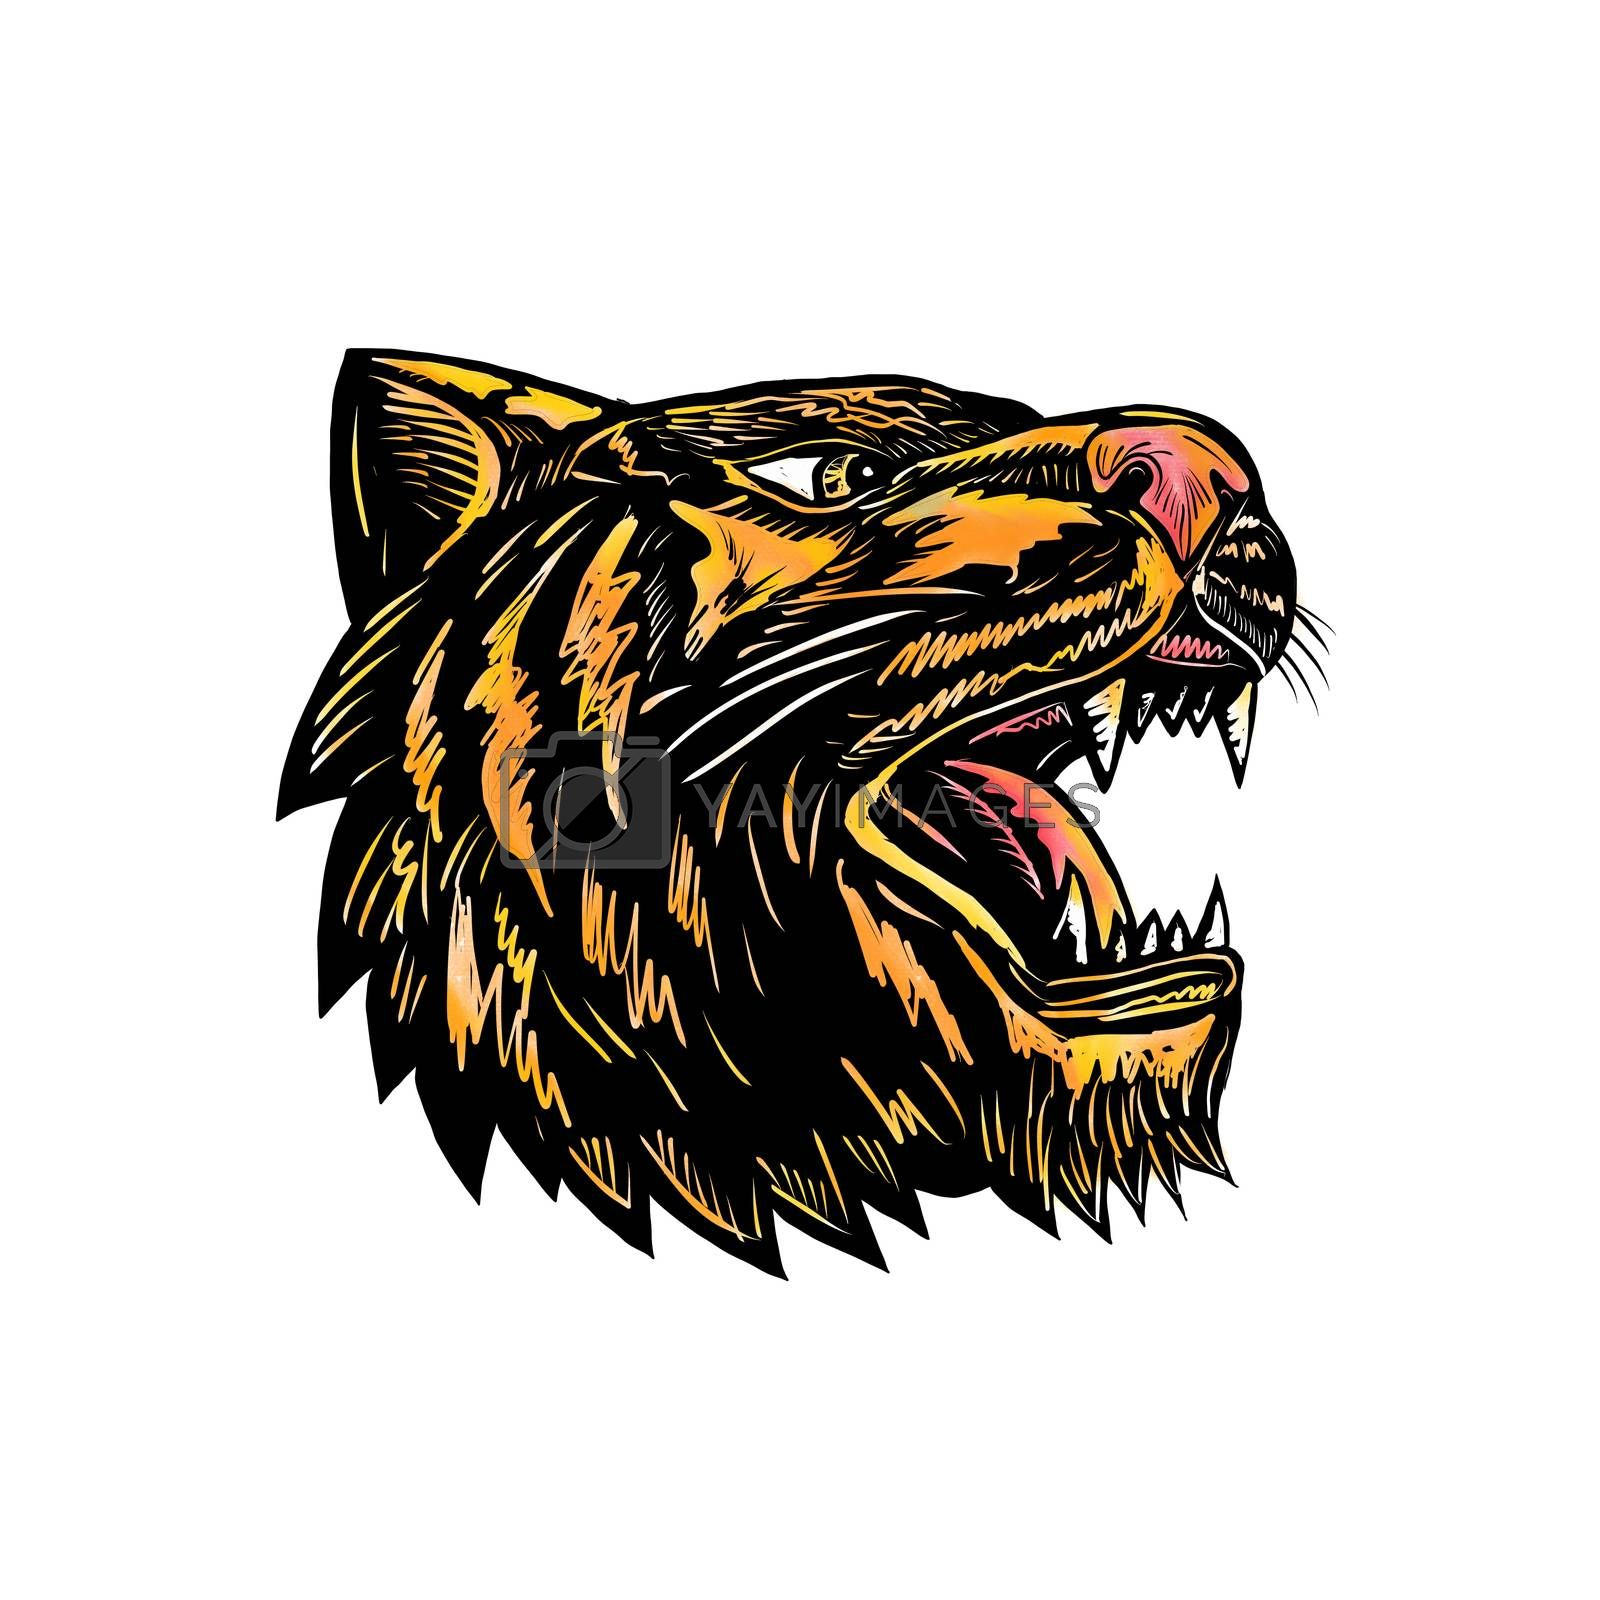 Woodcut style illustration of an angry growling tiger head viewed from side on isolated background.